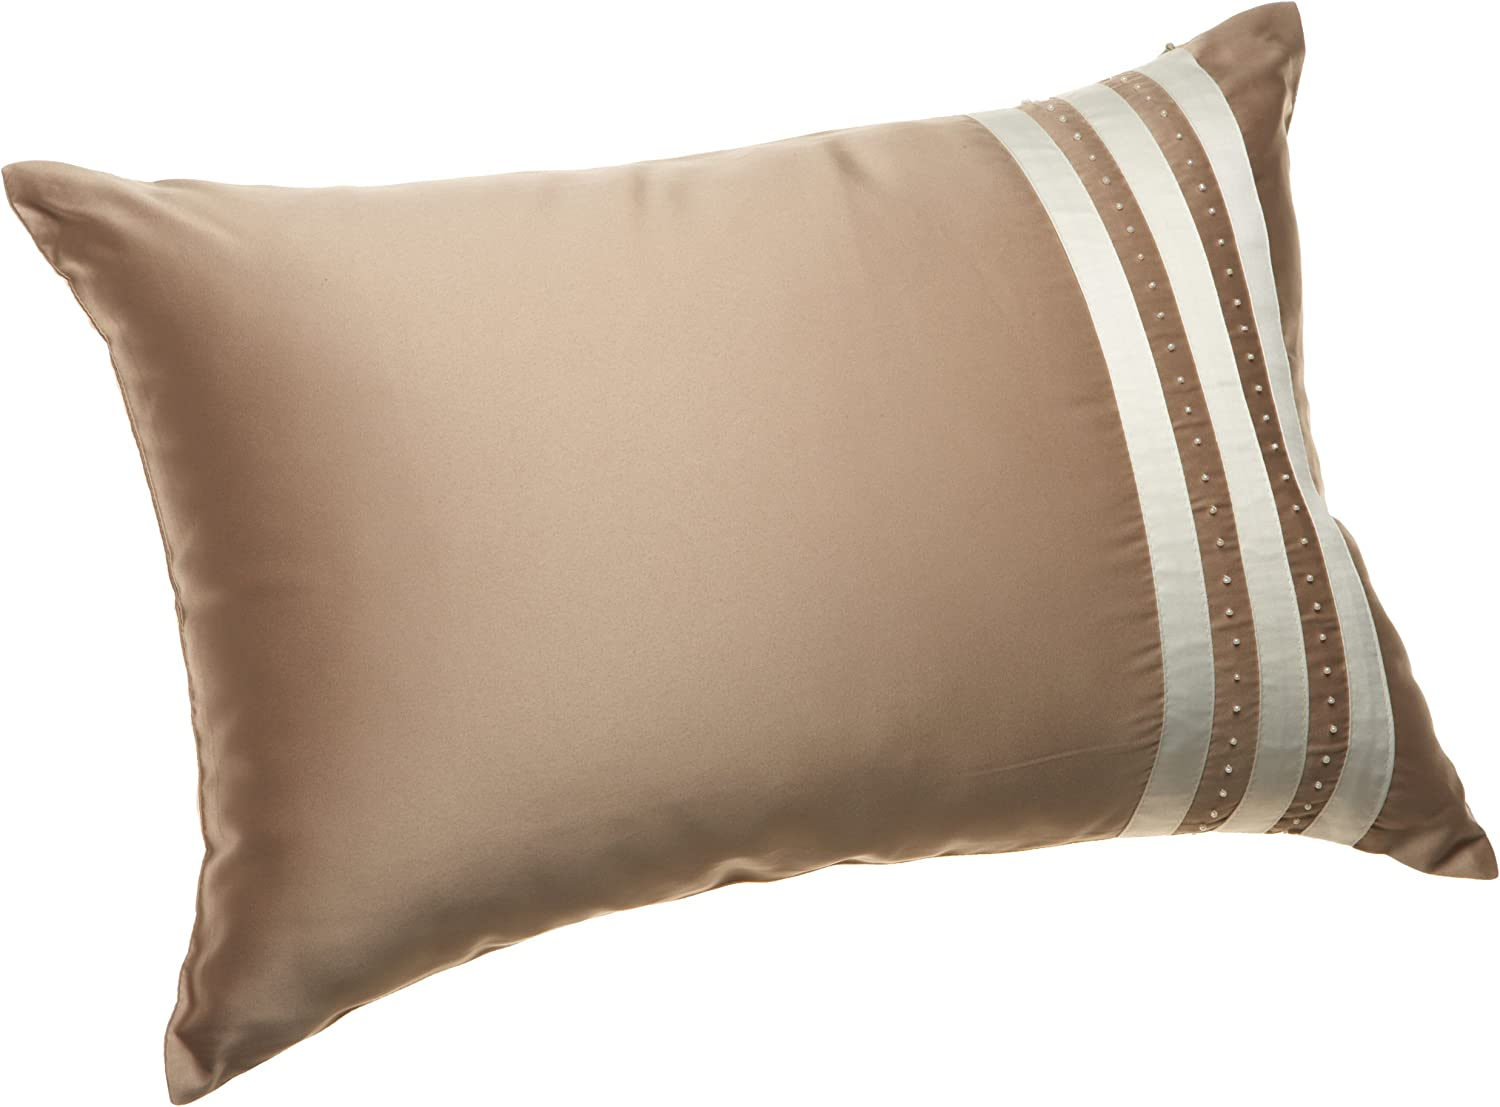 Amazon.com: Nicole Miller 9-inch Decorative Pillow, Ivory: Home